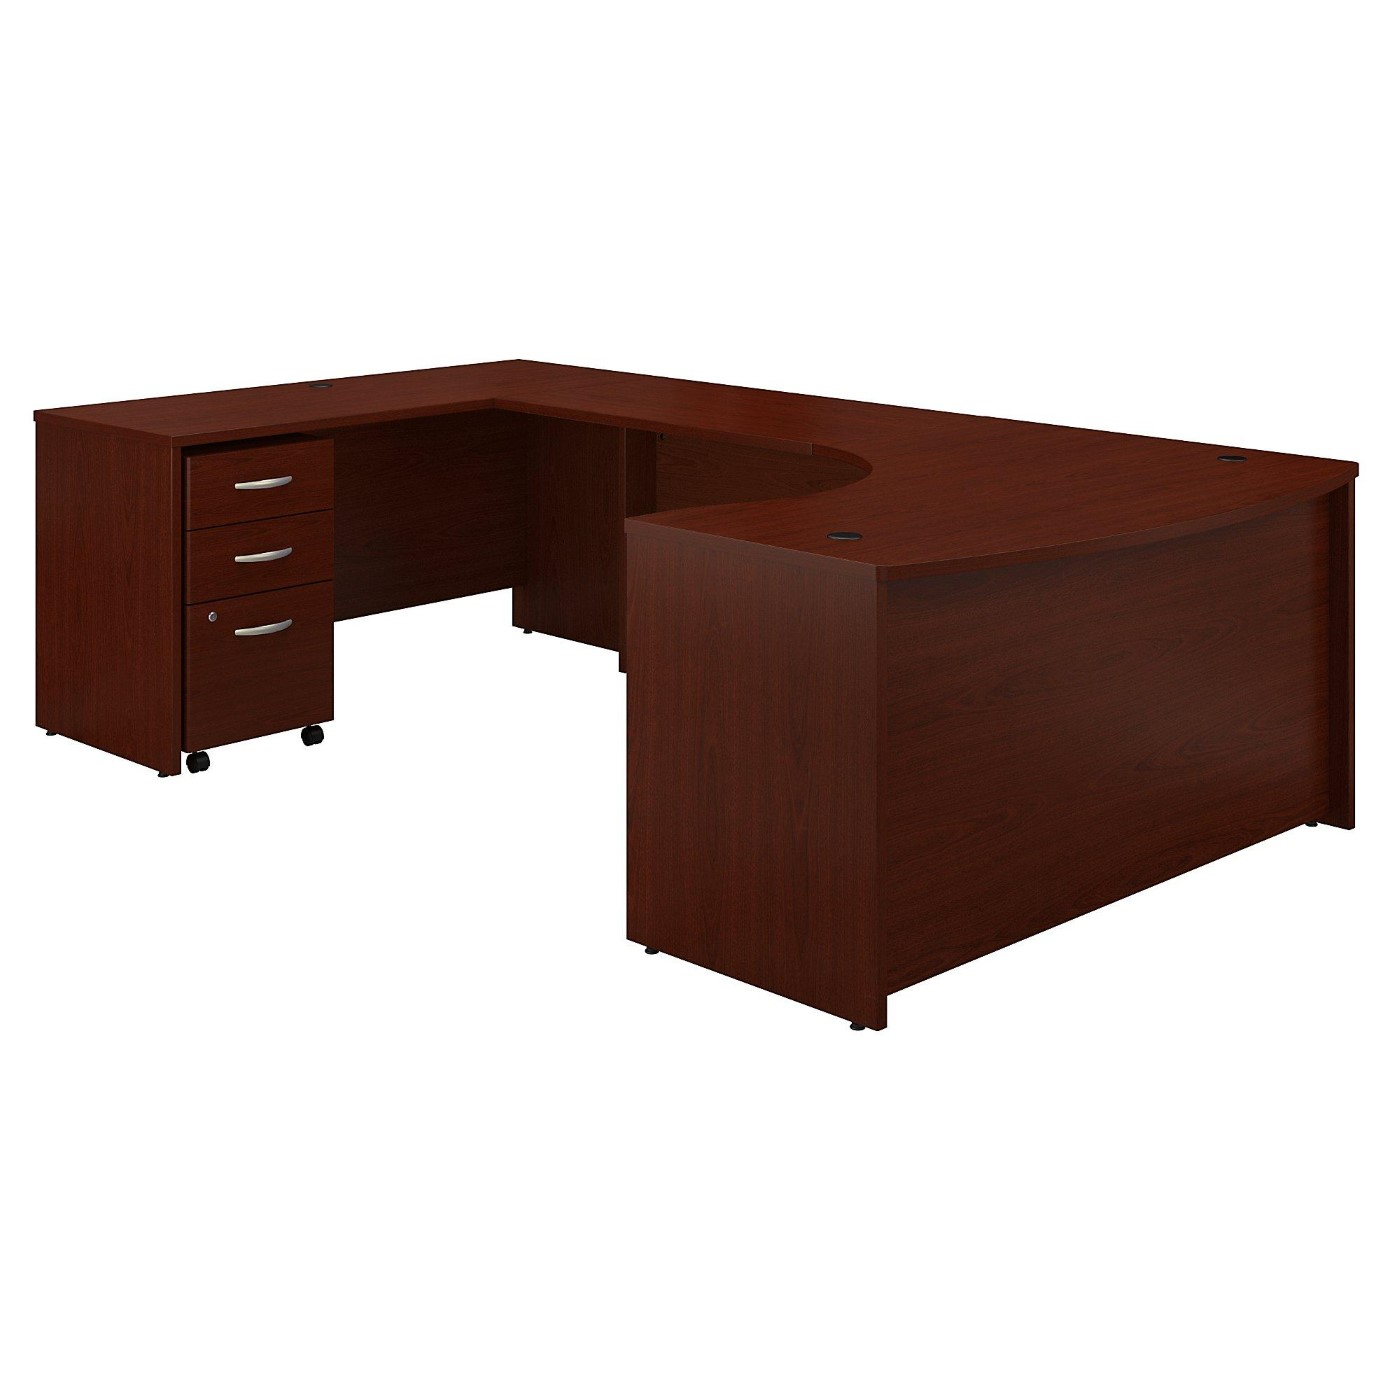 BUSH BUSINESS FURNITURE SERIES C 60W RIGHT HANDED BOW FRONT U SHAPED DESK WITH MOBILE FILE CABINET. FREE SHIPPING</font></b></font>&#x1F384<font color=red><b>ERGONOMICHOME HOLIDAY SALE - ENDS DEC. 17, 2019</b></font>&#x1F384